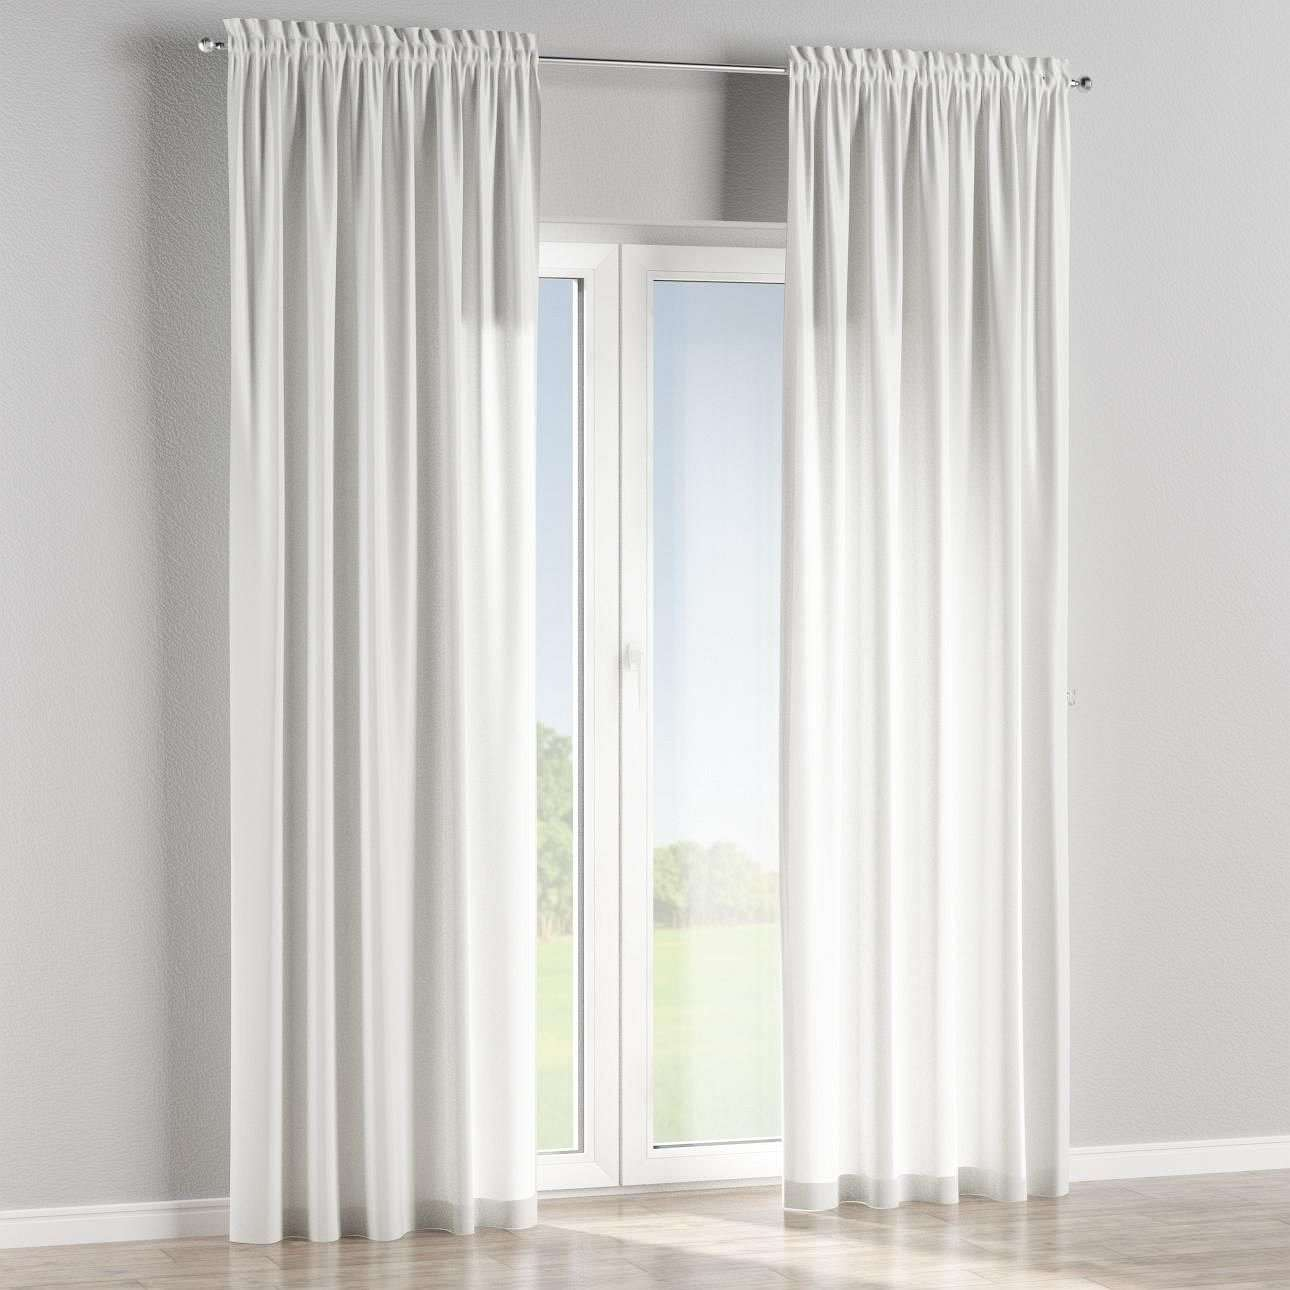 Slot and frill curtains in collection Rustica, fabric: 138-13